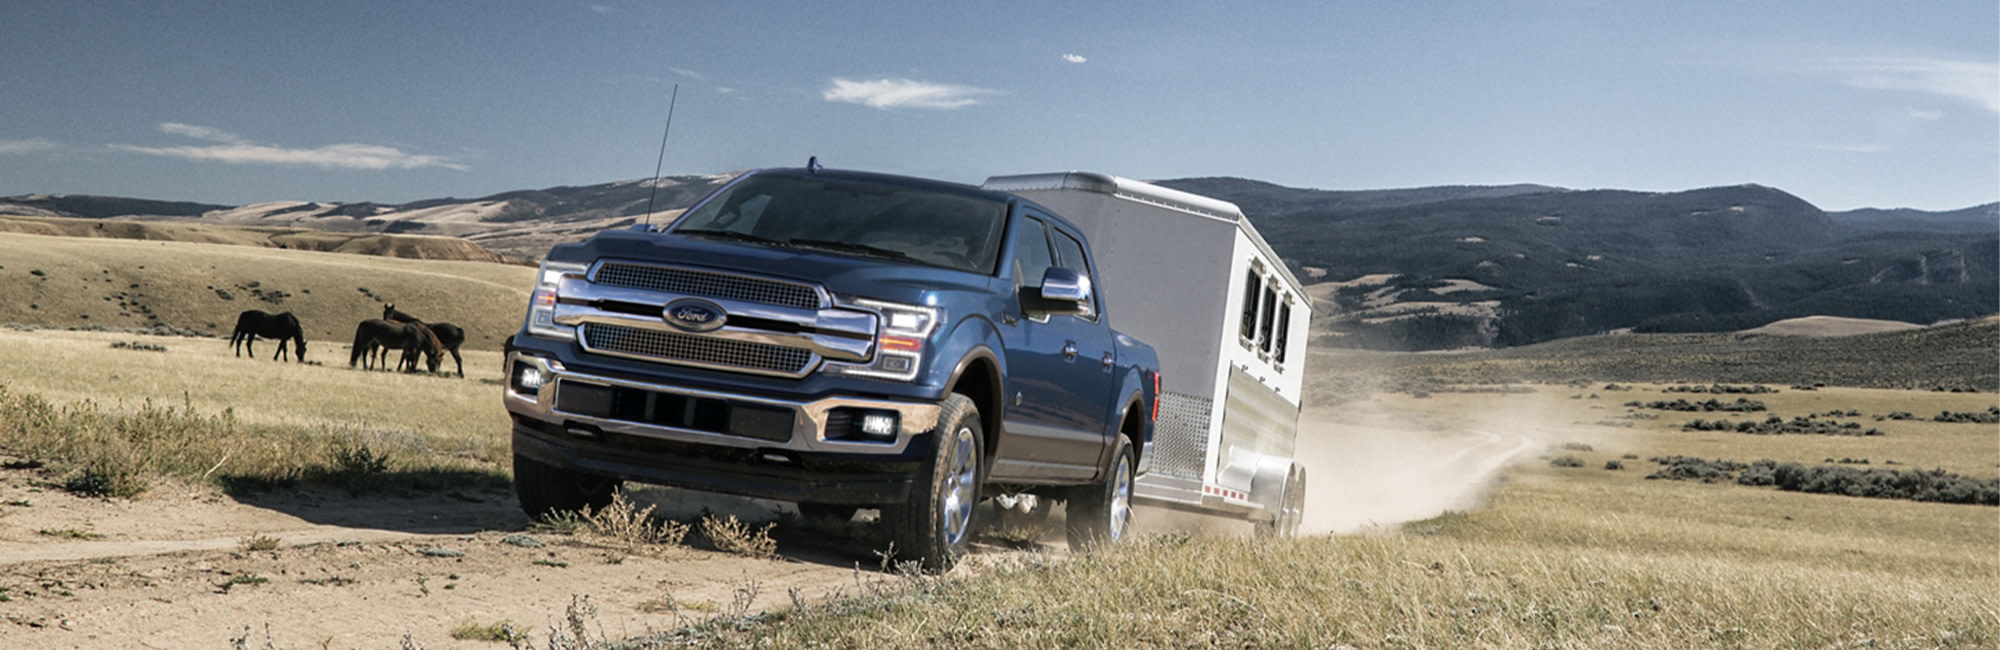 2020 Ford F-150 Towing Capacity